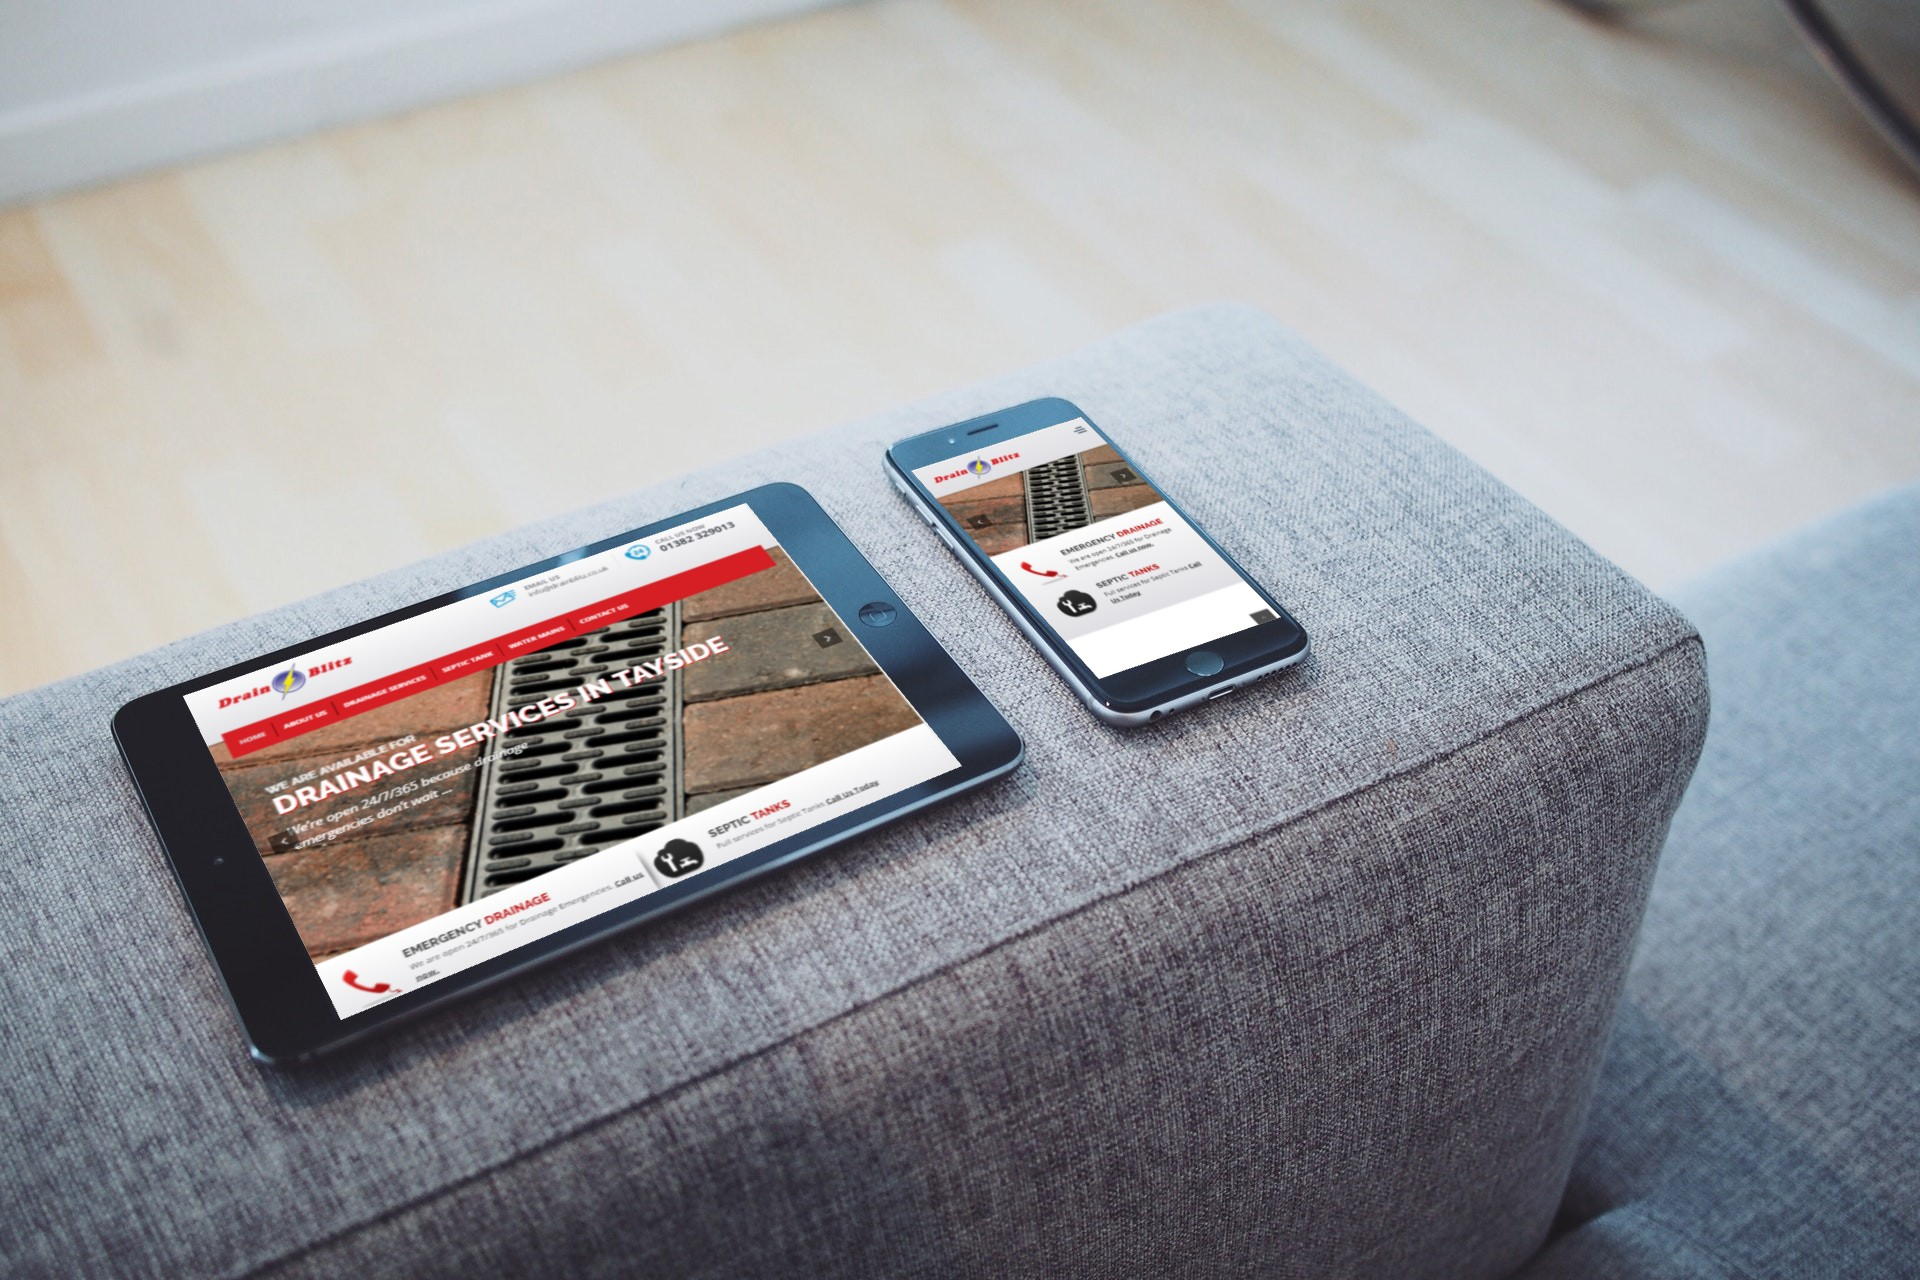 A tablet and phone sitting on the arm rest of a modern grey sofa displaying the DrainBlitz website